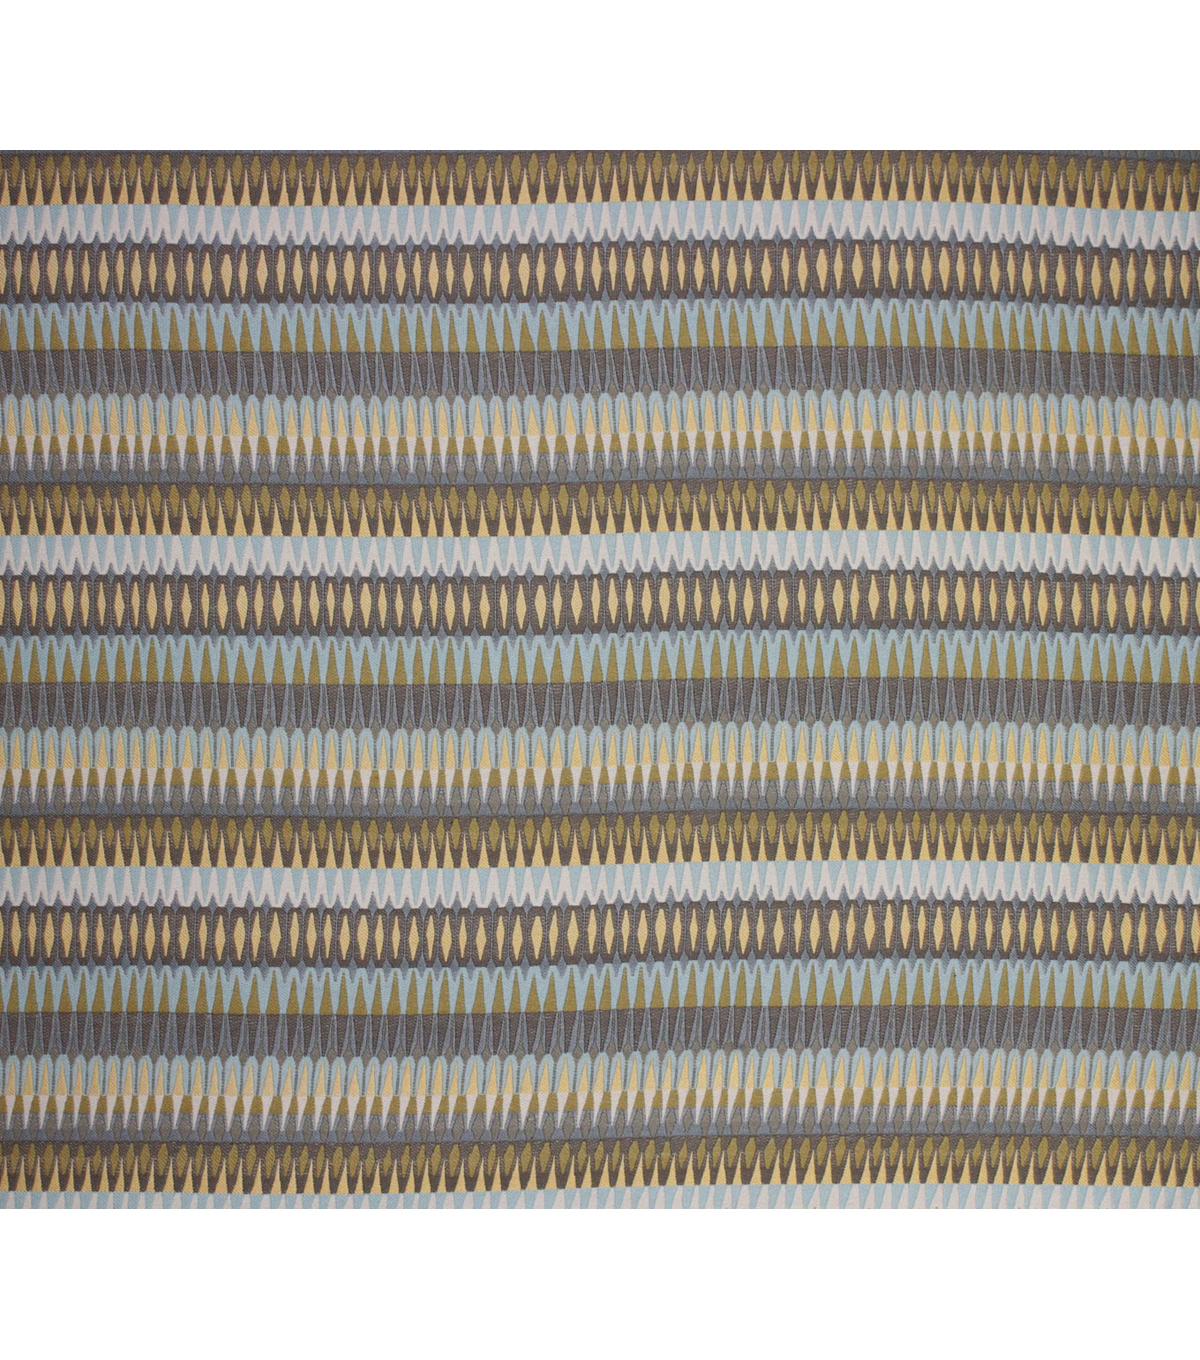 Richloom Studio Multi-Purpose Decor Fabric 58\u0022-Radical/Aluminum